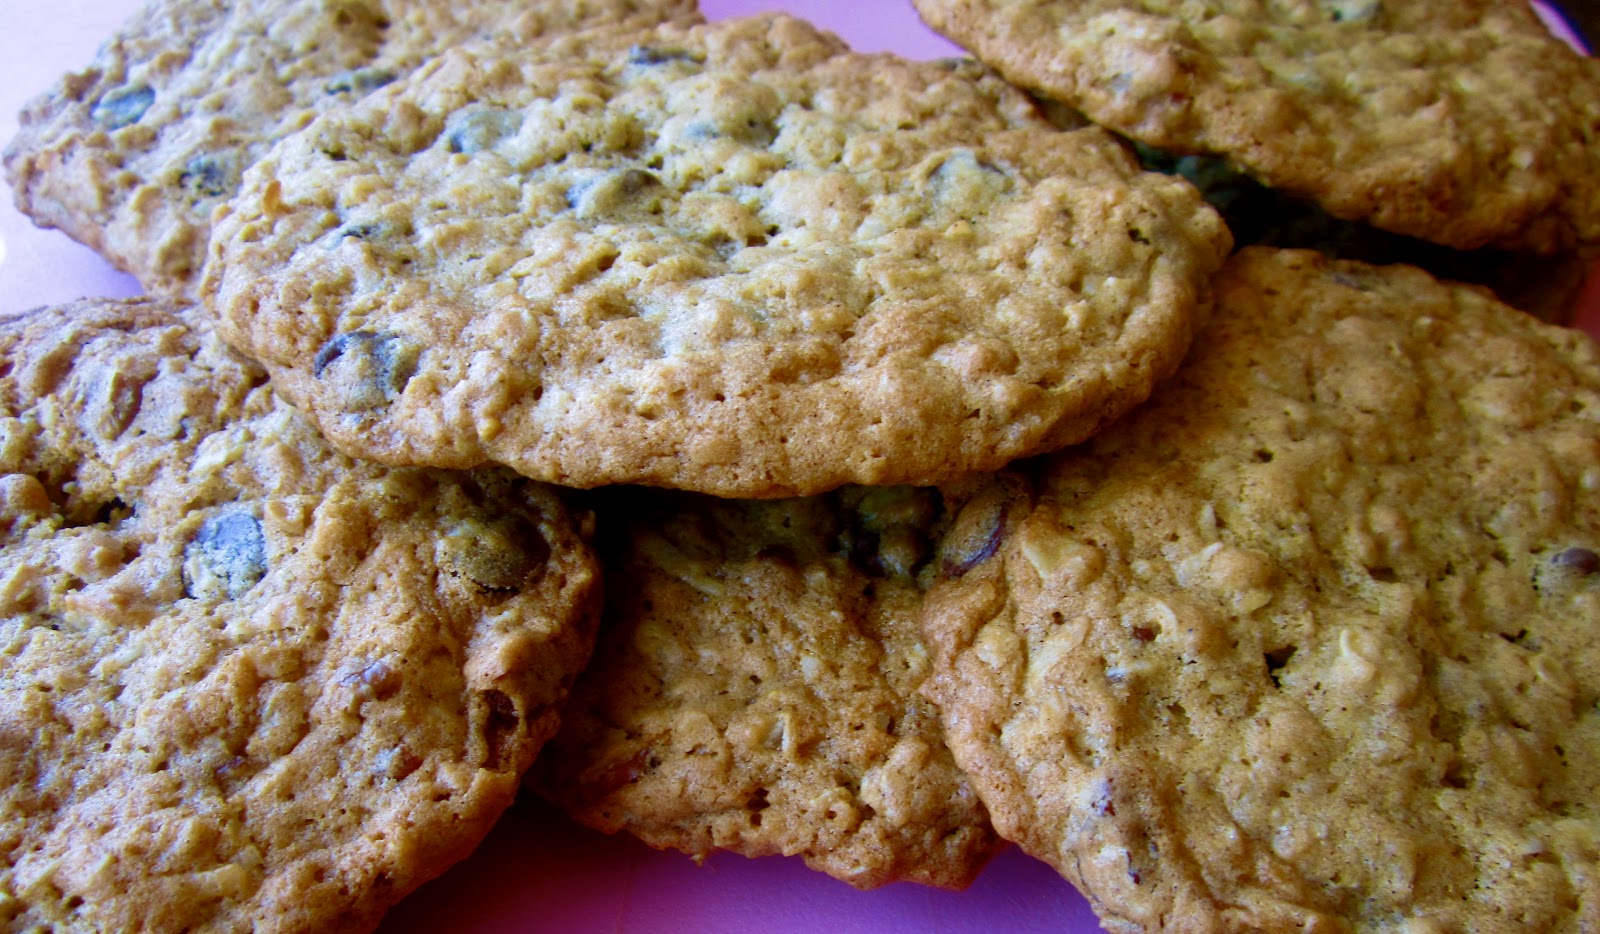 ... plain chocolate chip cookies when you can make Cowboy Cookies instead